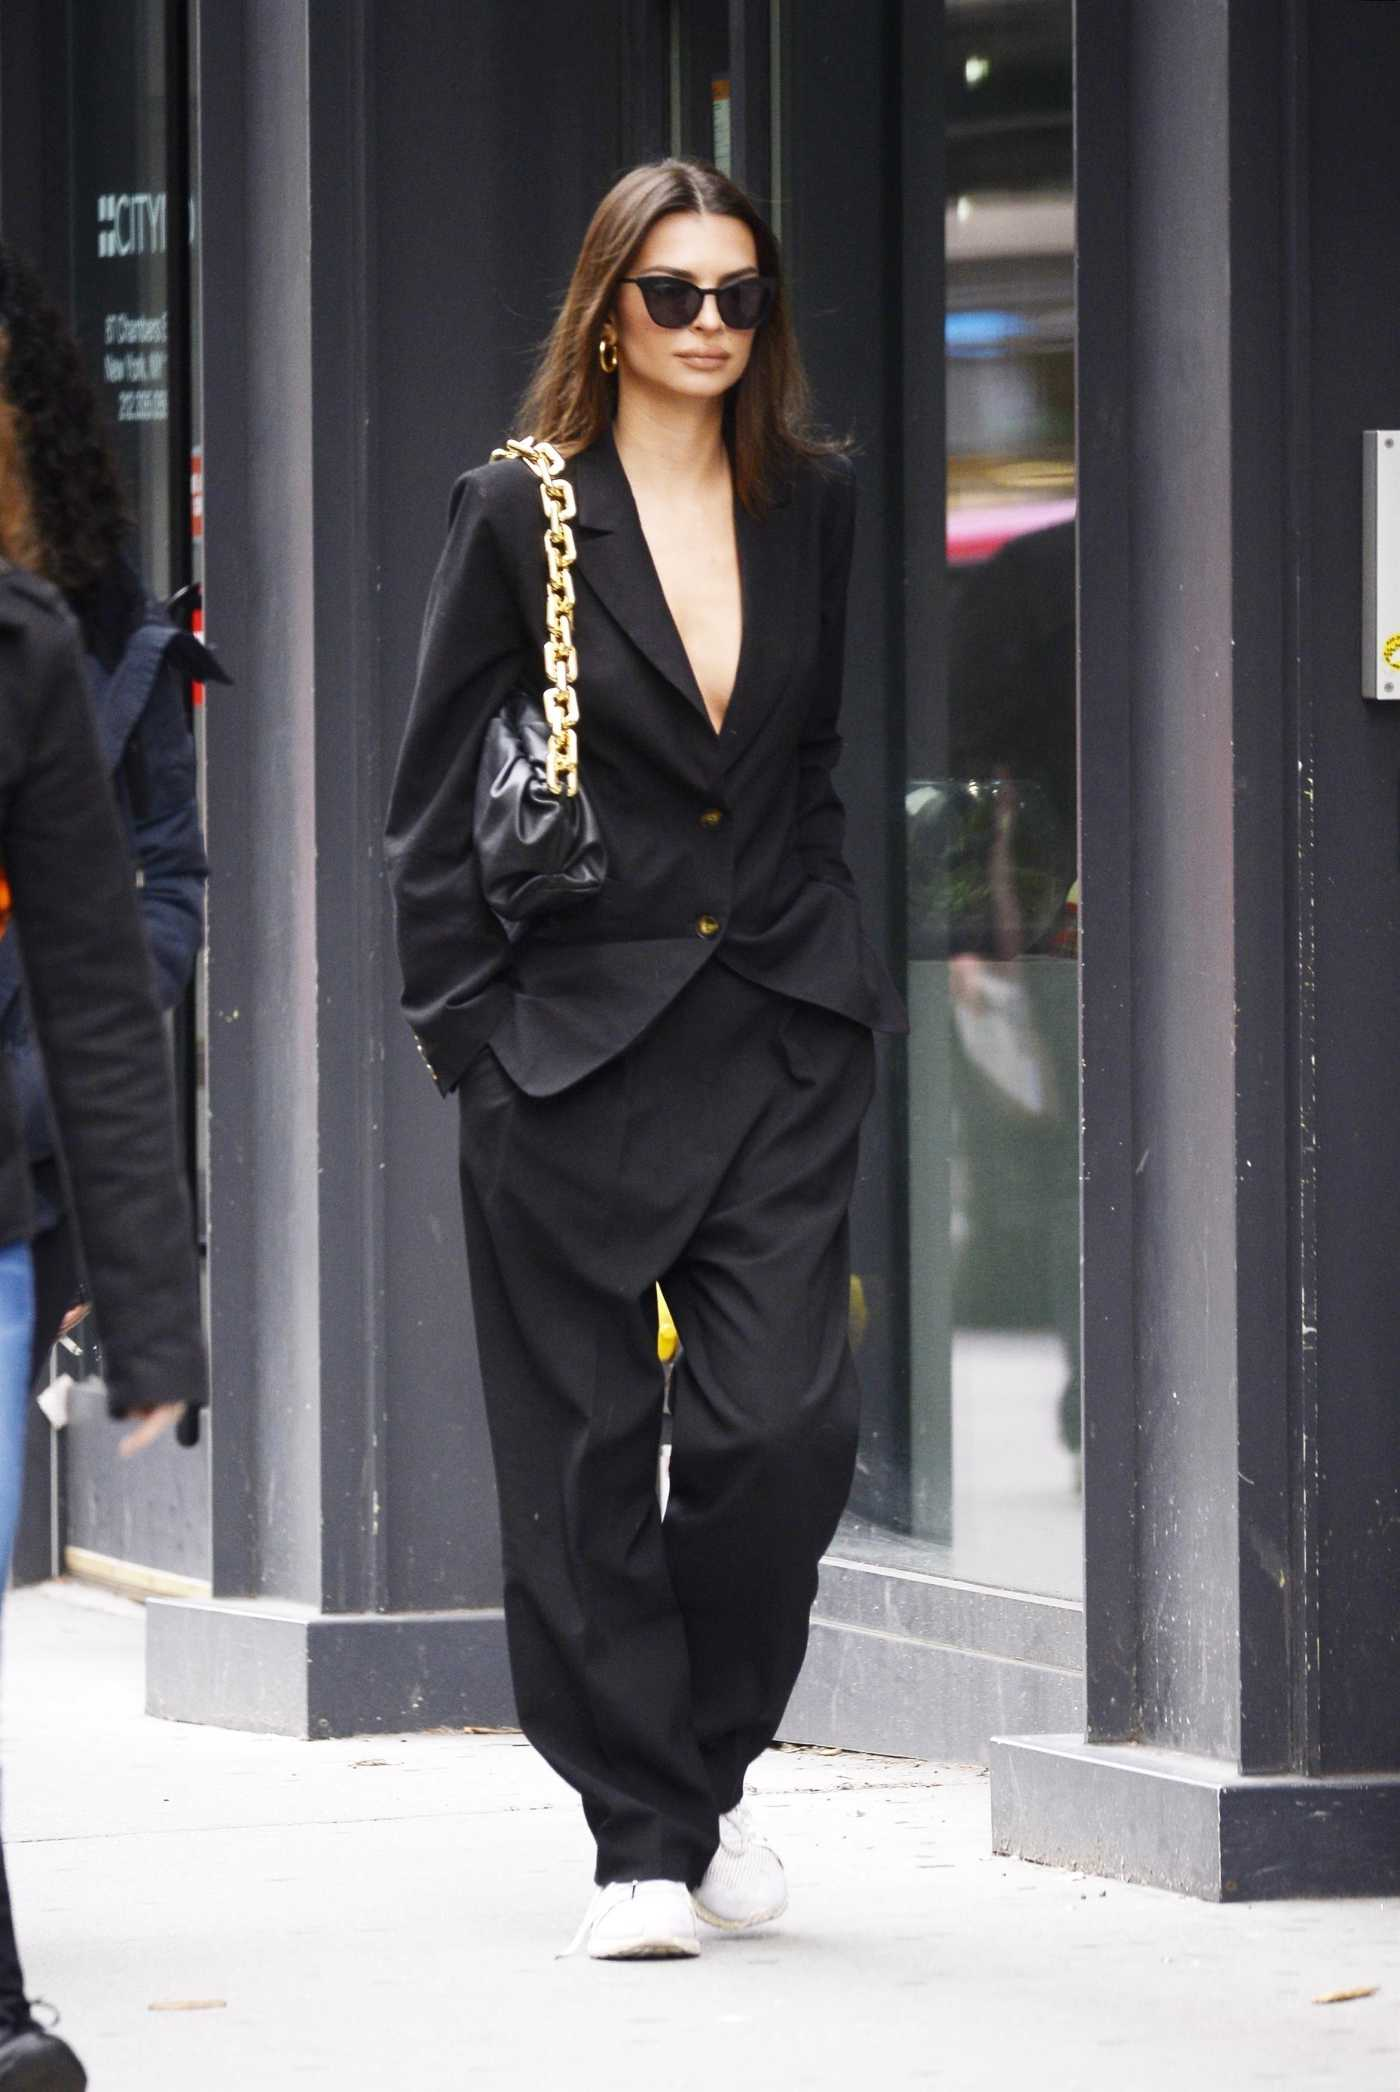 Emily Ratajkowski in a Black Oversized Suit Was Seen Out in New York 03/10/2020